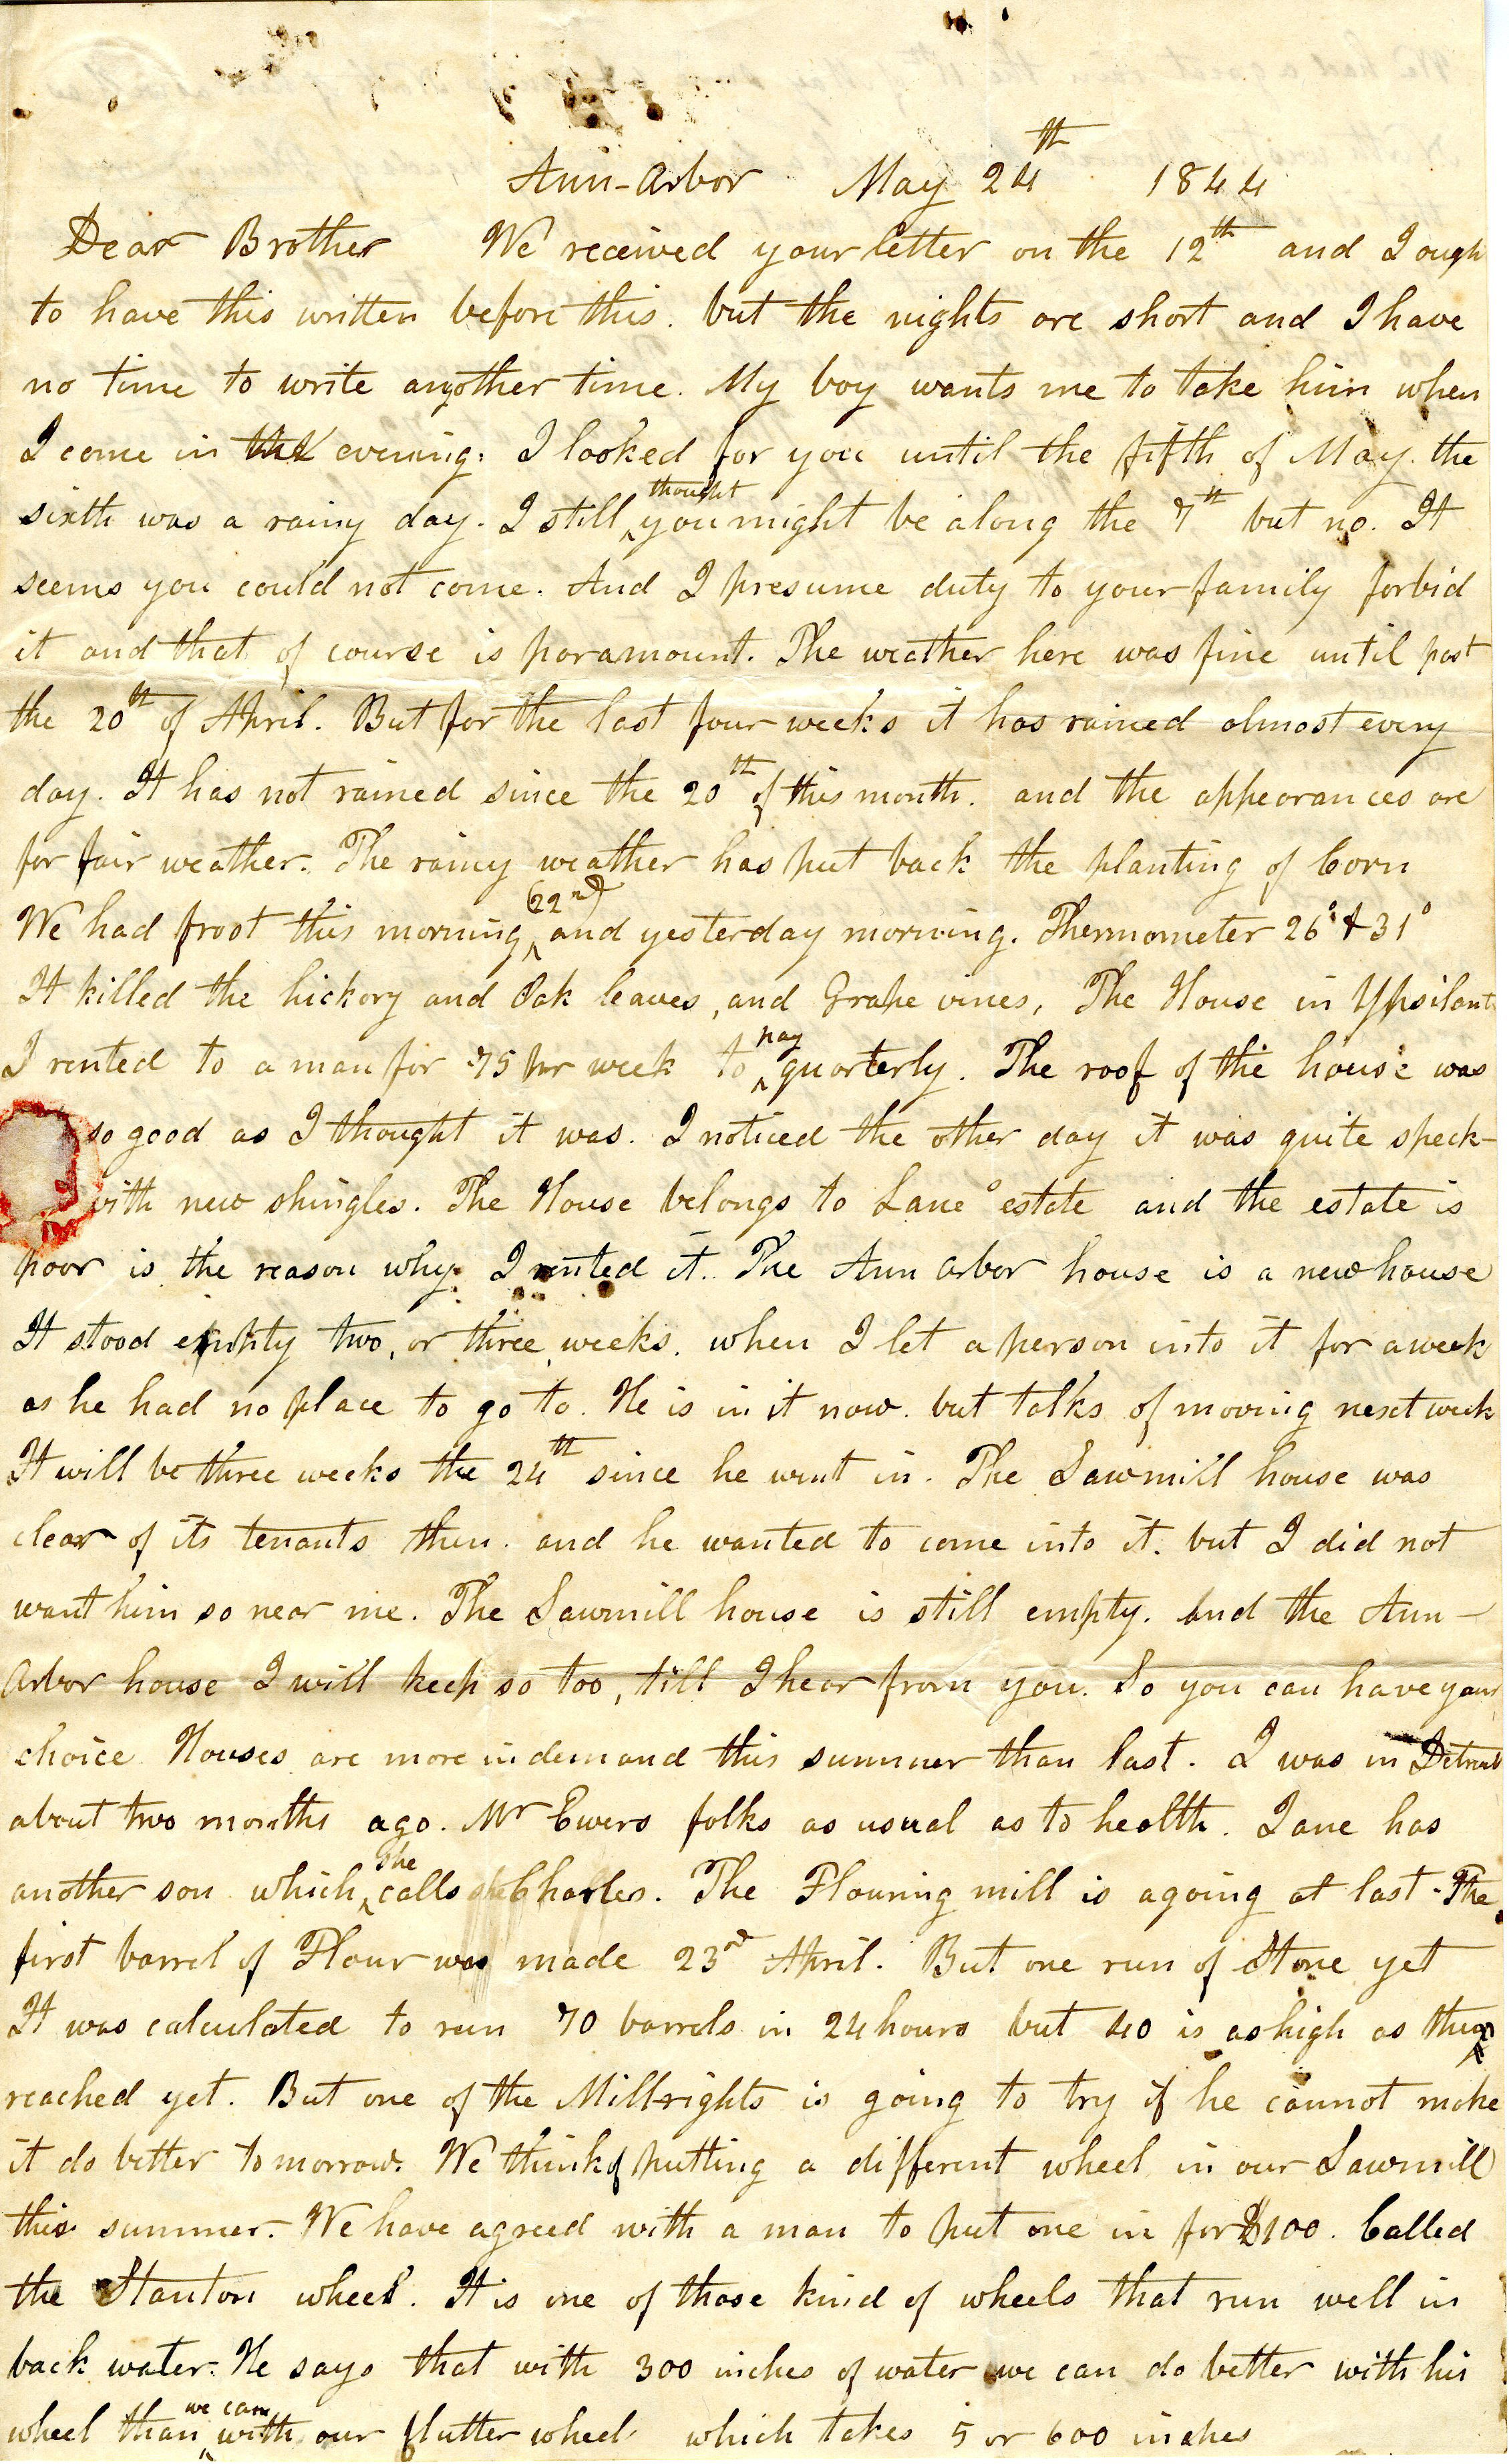 Letter From John Geddes to William Geddes, May 24, 1844 image